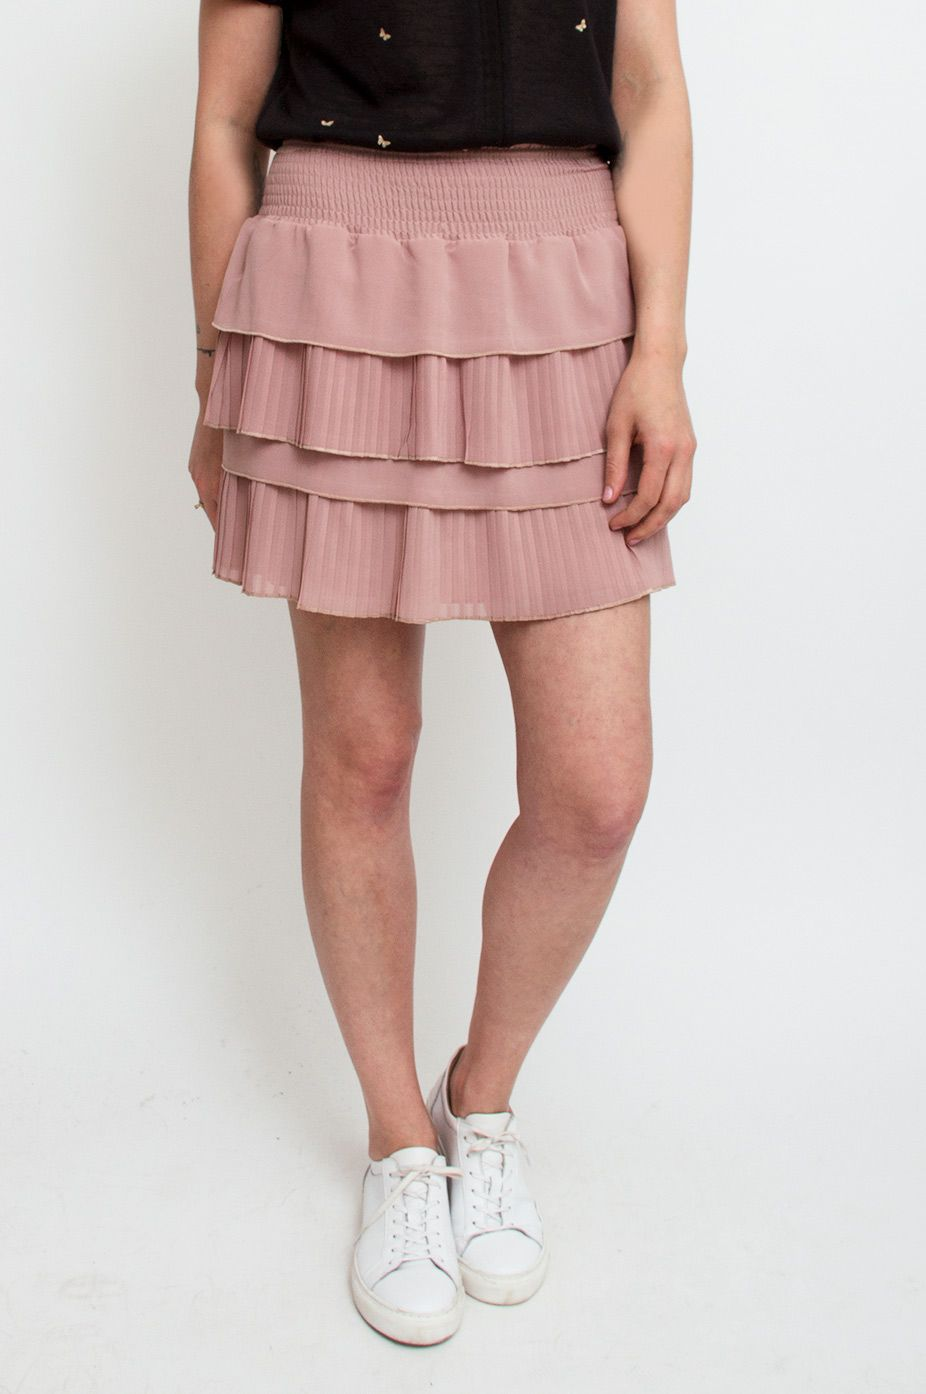 This nude miniskirt, cut in a pleated style, features gathered fabric at the waist for a playful and flattering effect. We like it worn with a bomber jacket for a fresh, sporty look. By Neo Noir.      Available at Sienna and Sienna & Lois.